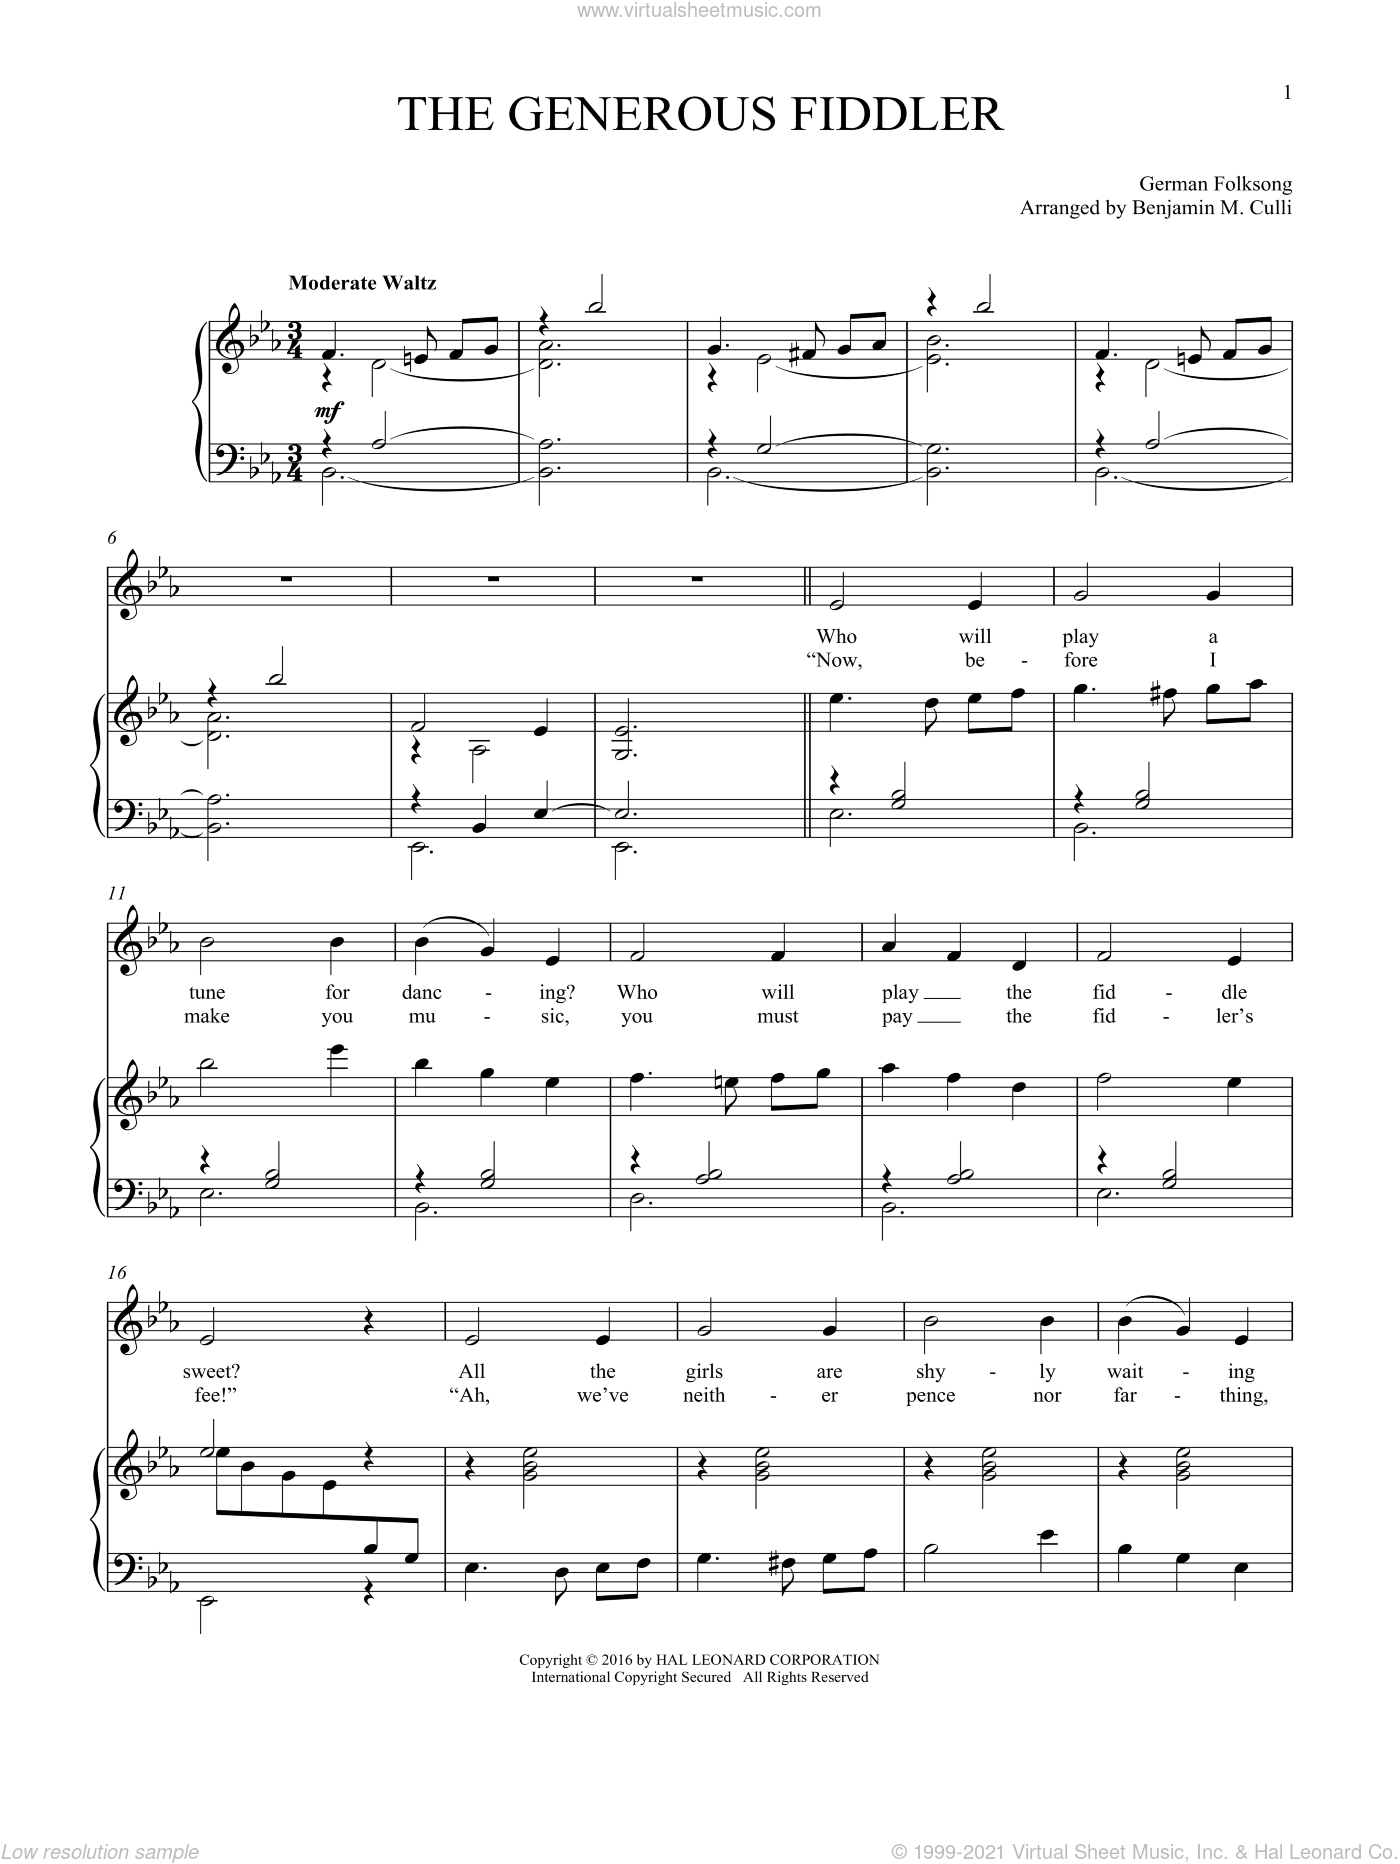 The Generous Fiddler sheet music for voice and piano, intermediate skill level